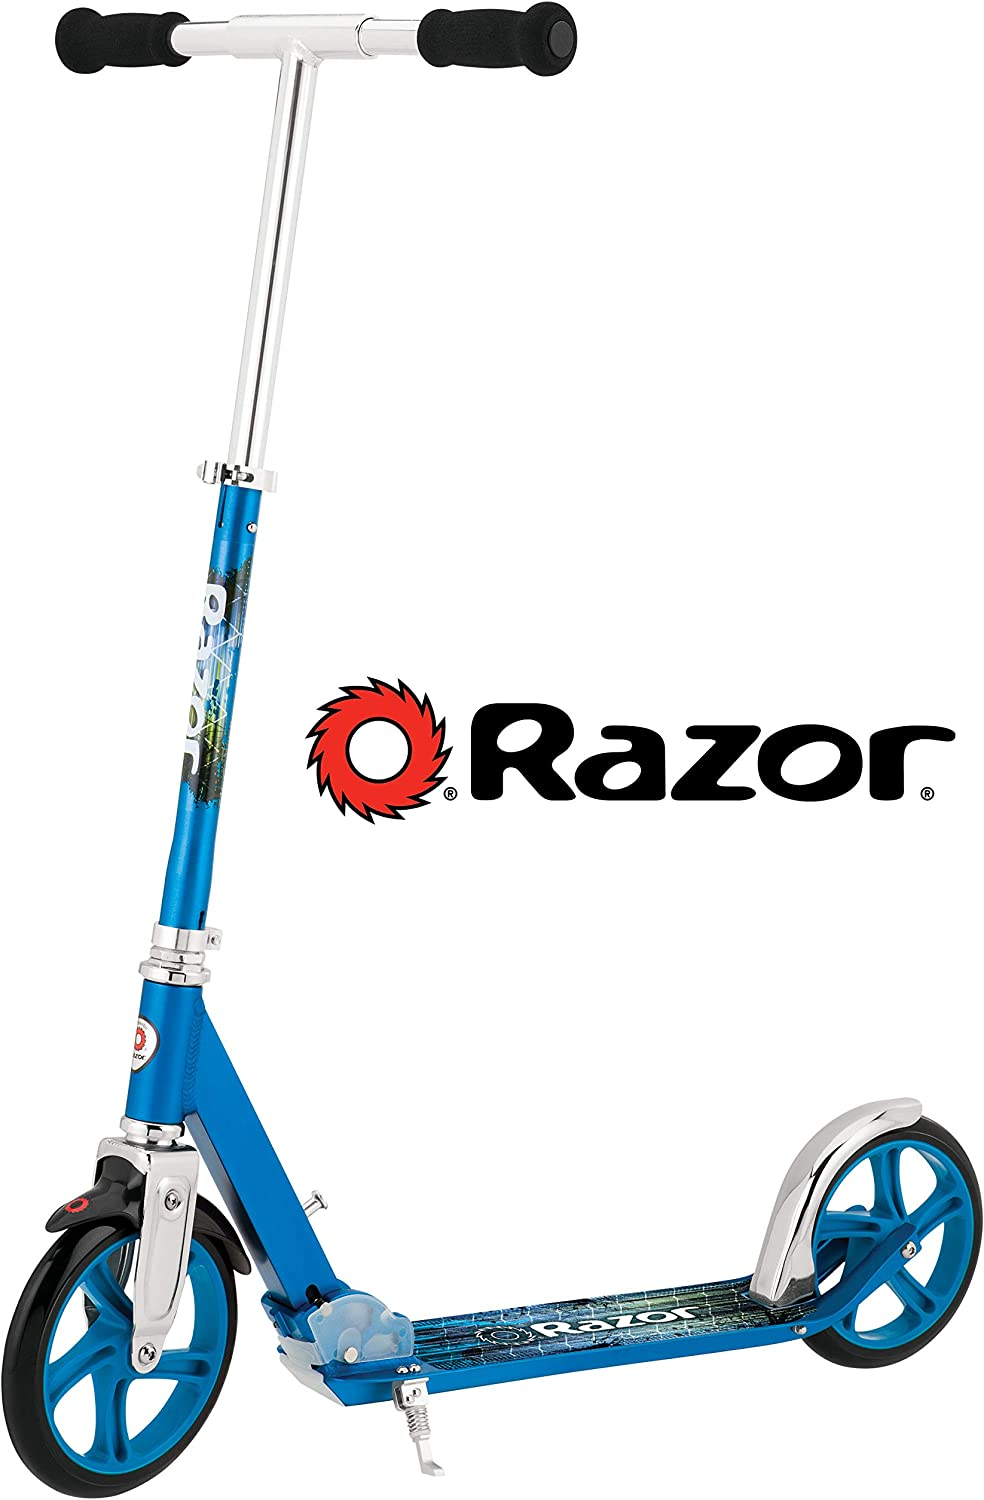 Razor A5 LUX Kick Scooter / US